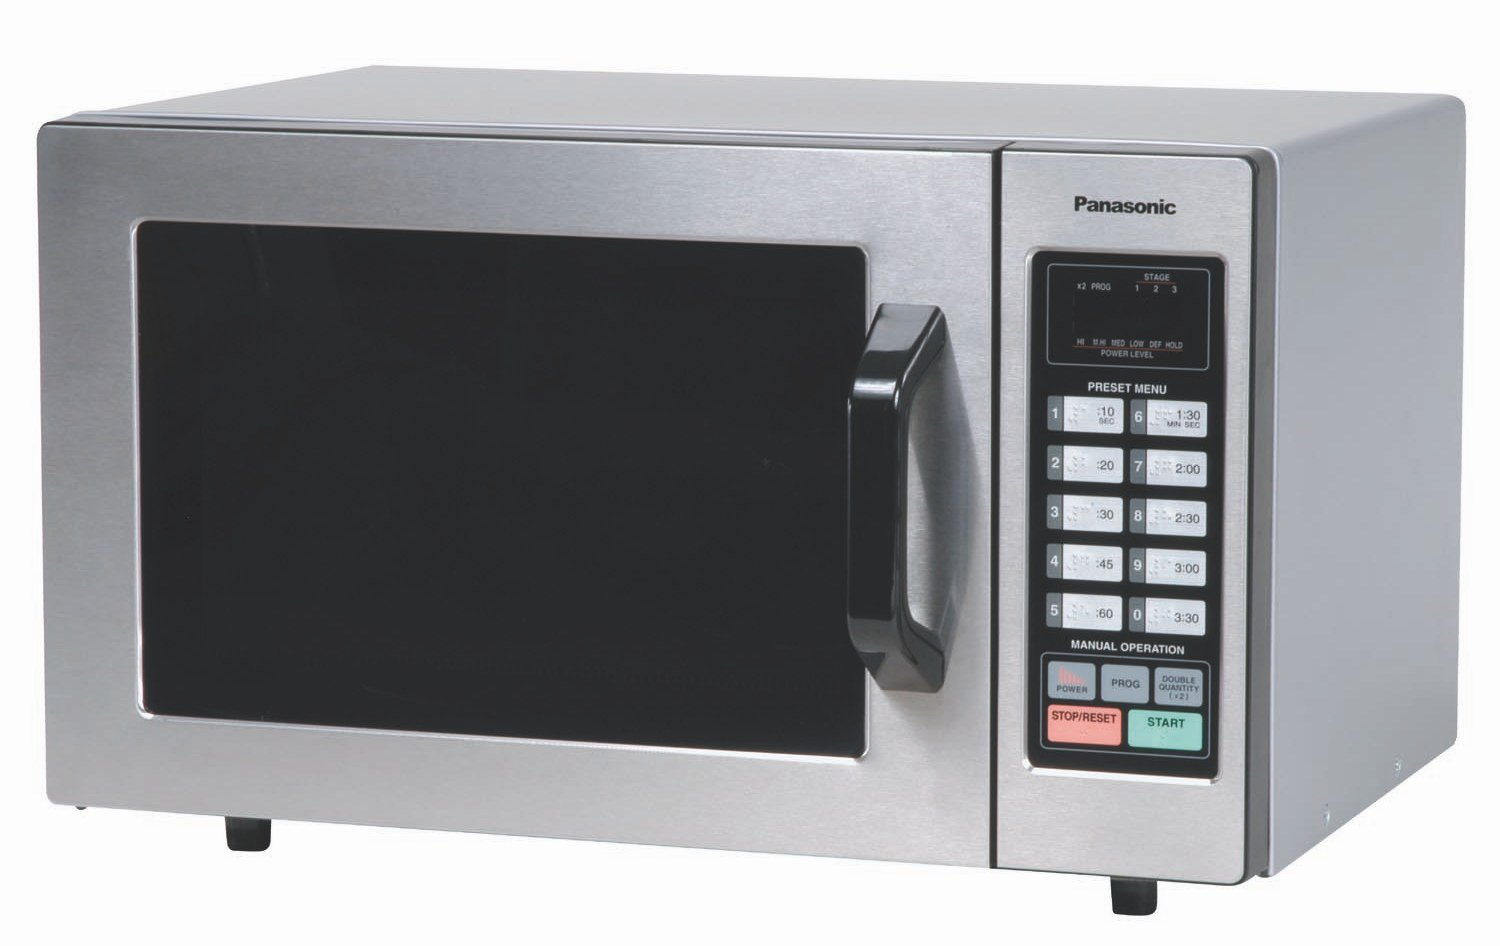 Panasonic Countertop Commercial Microwave Oven NE-1054F Stainless Steel with 10 Programmable Memory and Touch